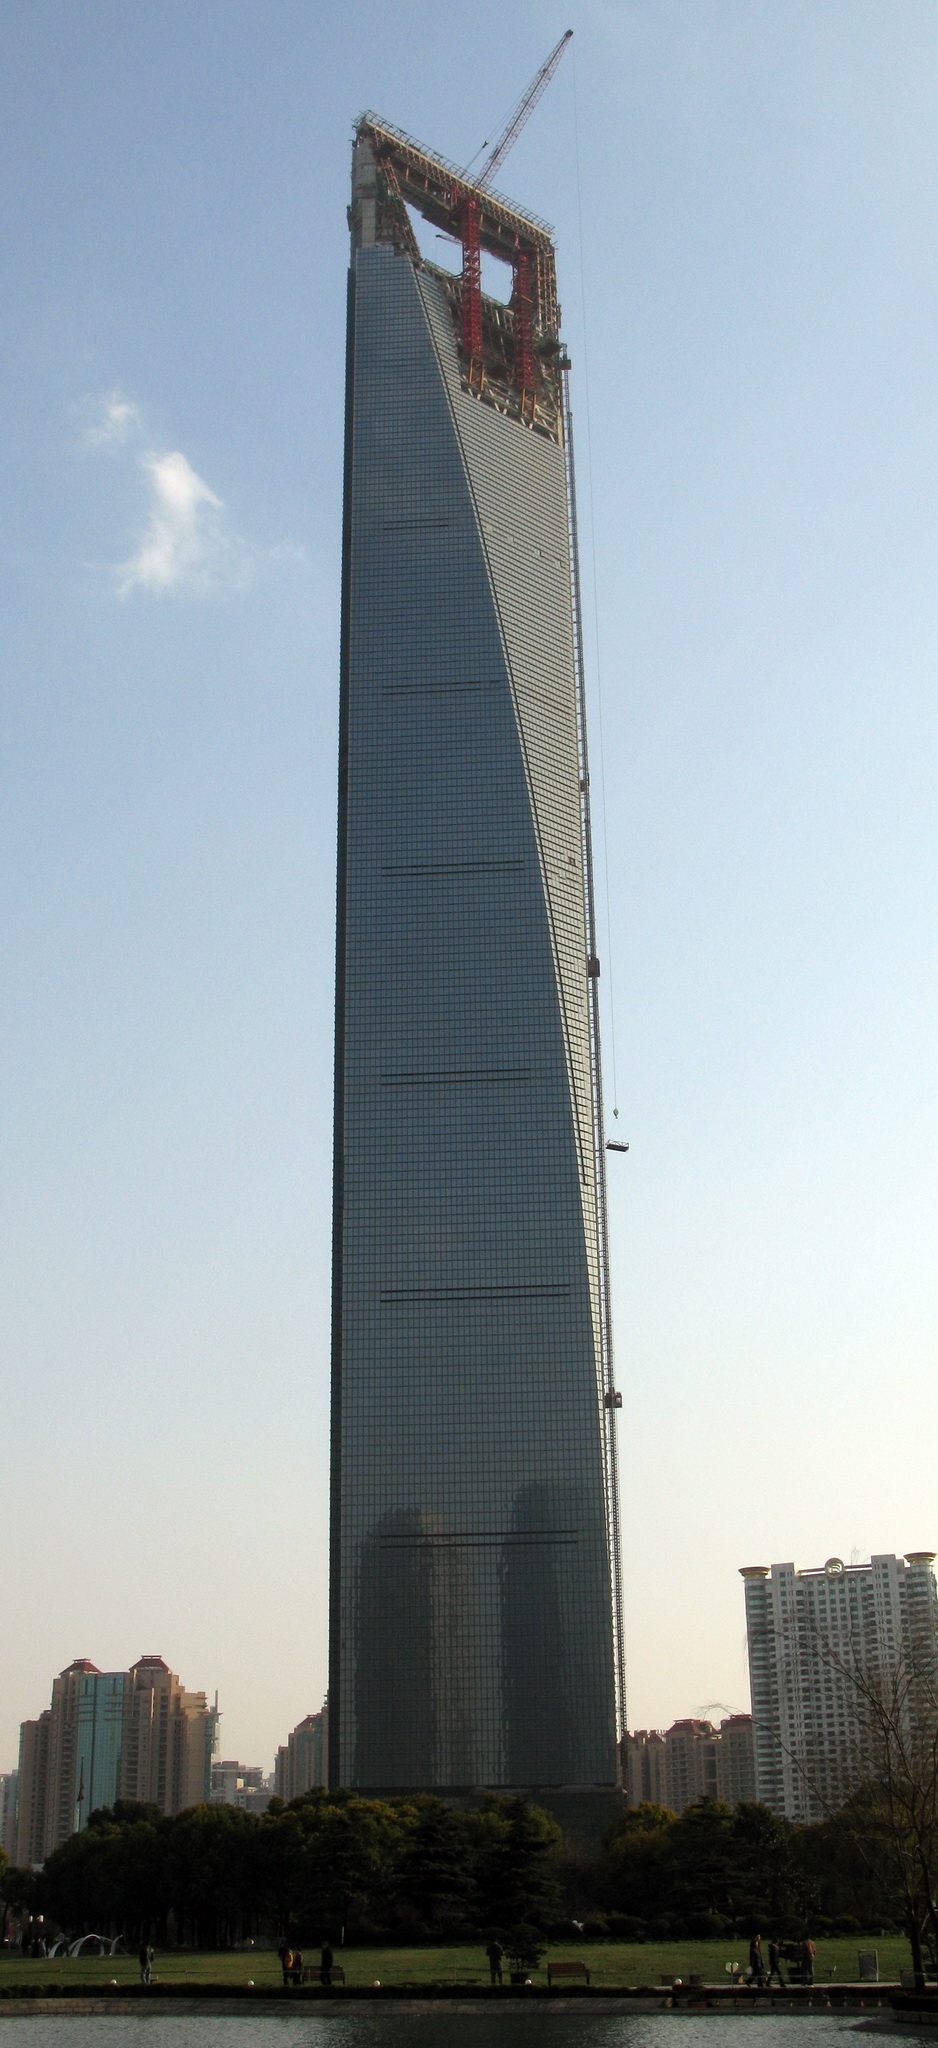 File:Shanghai WORLD FINANCIAL CENTER 200802.jpg - Wikimedia Commons